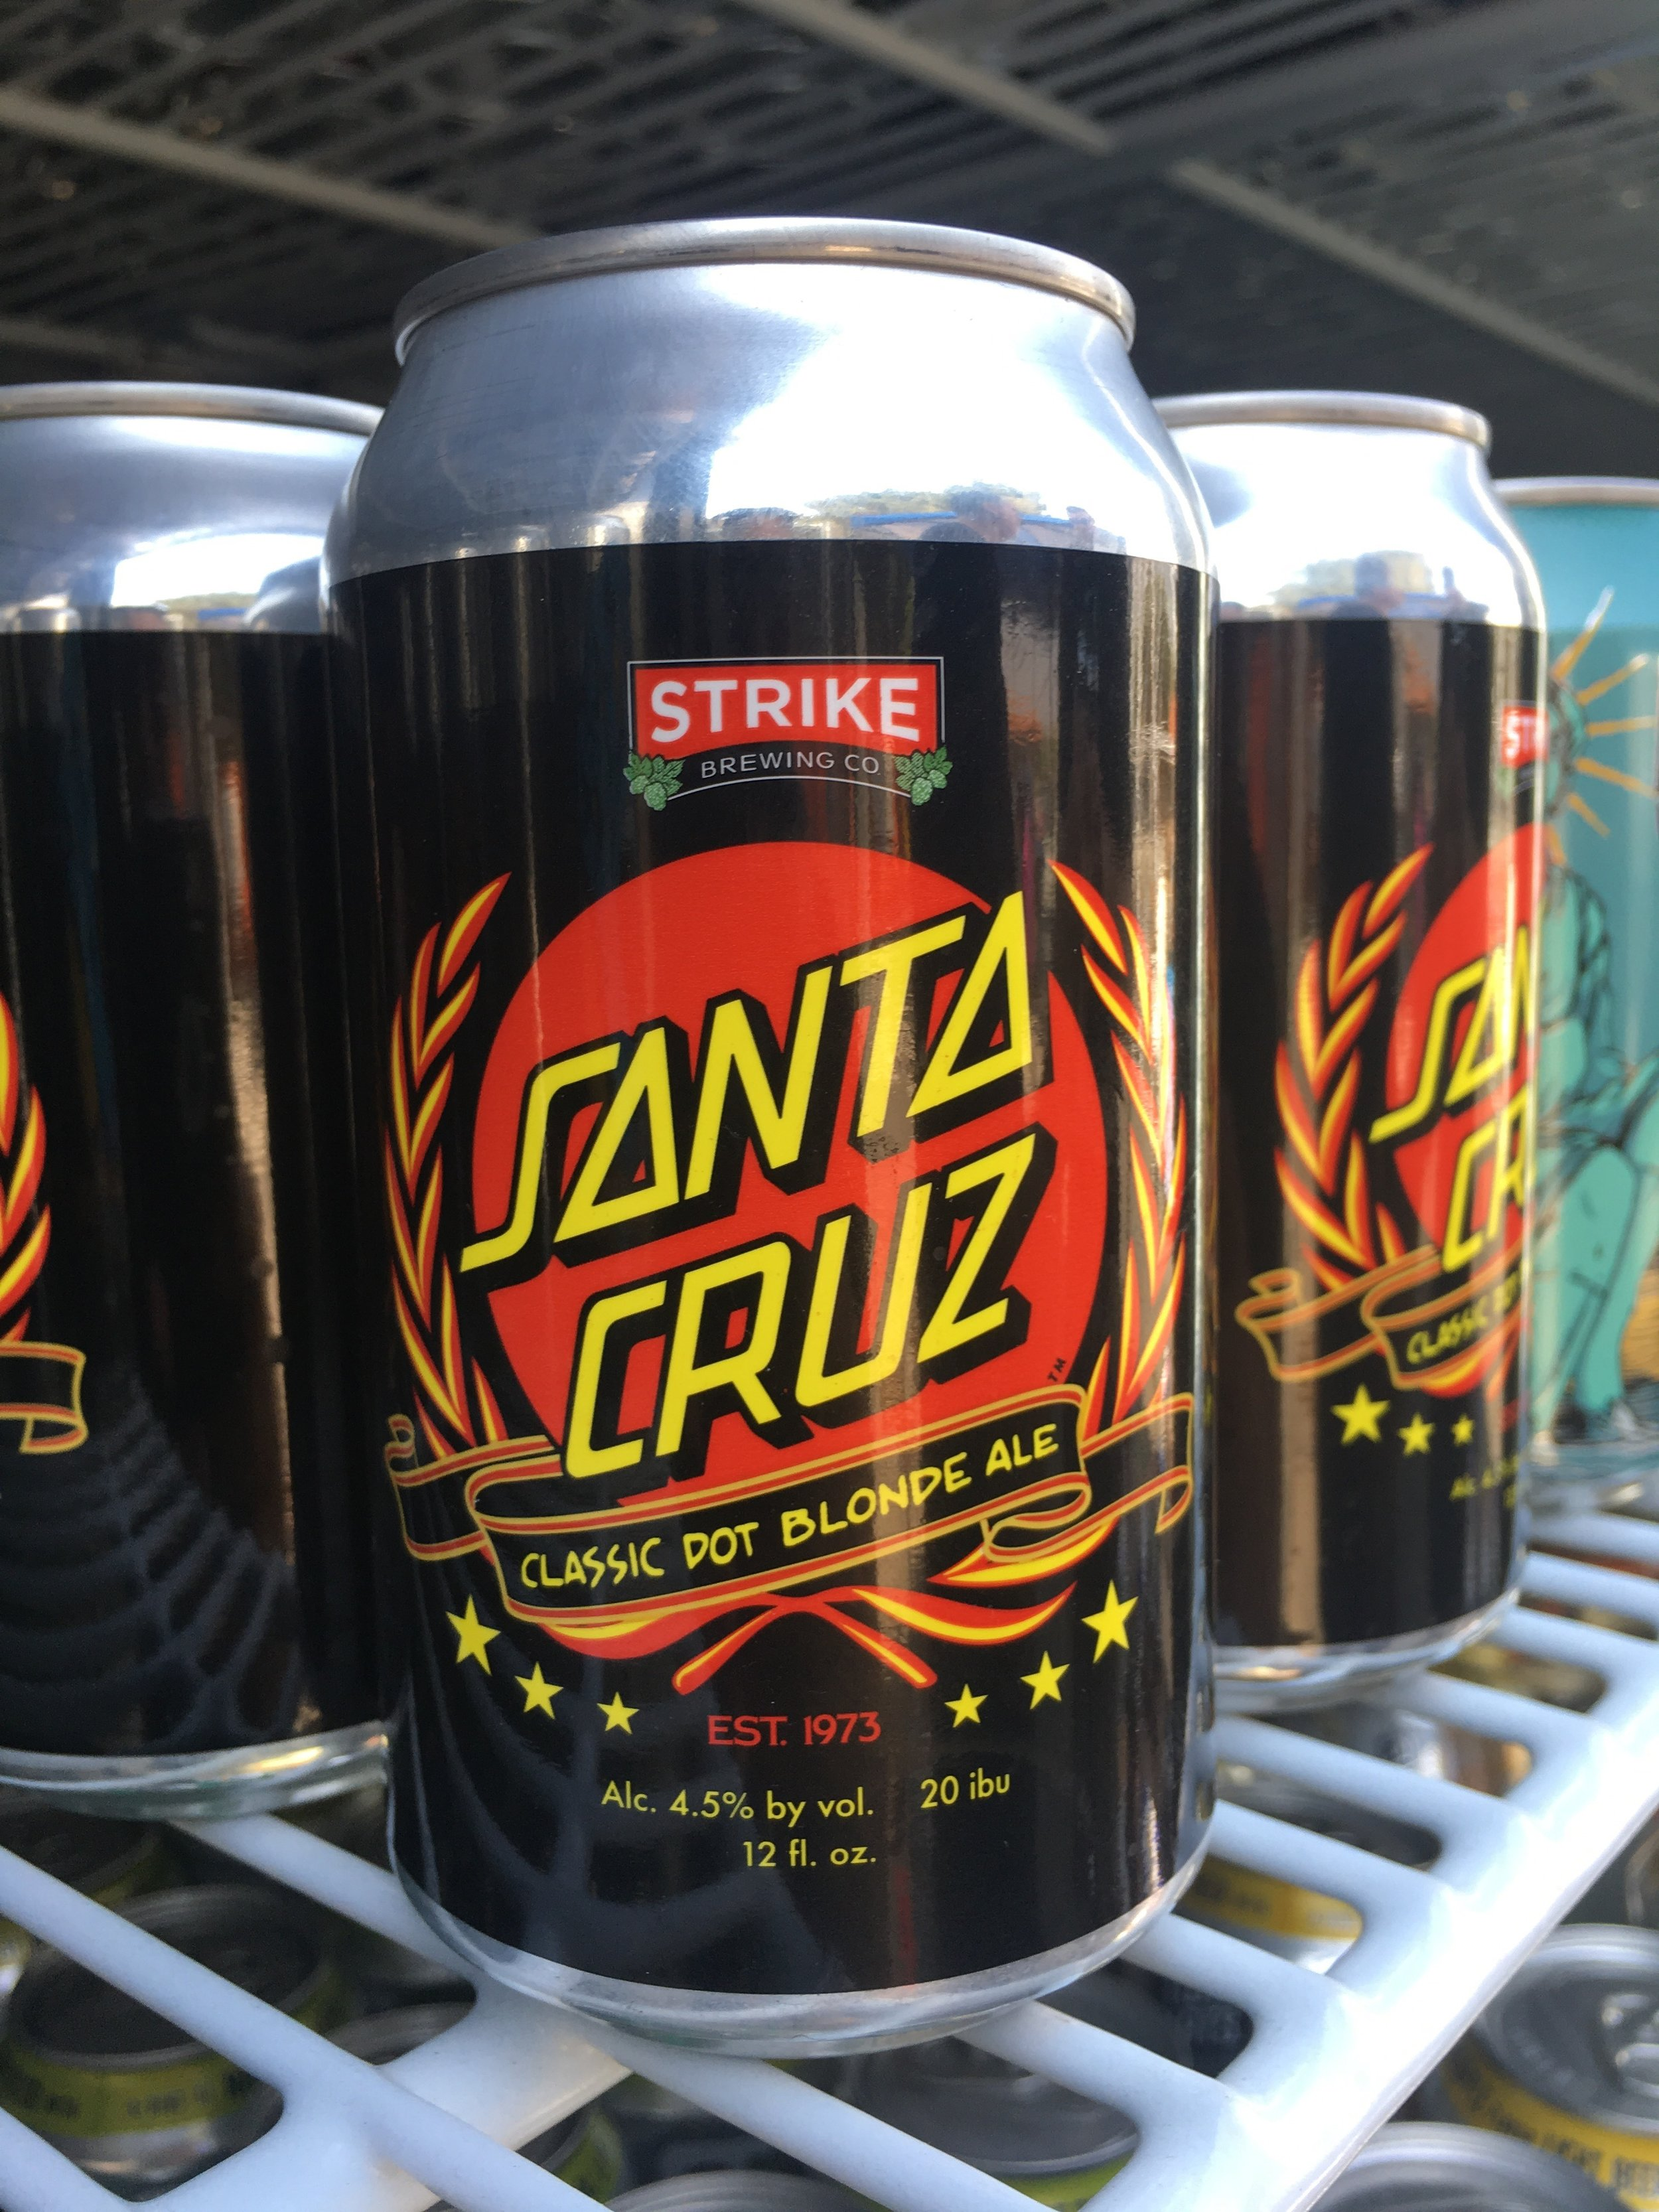 Strike Brewing - Santa Cruz Classic Dot Blonde Ale